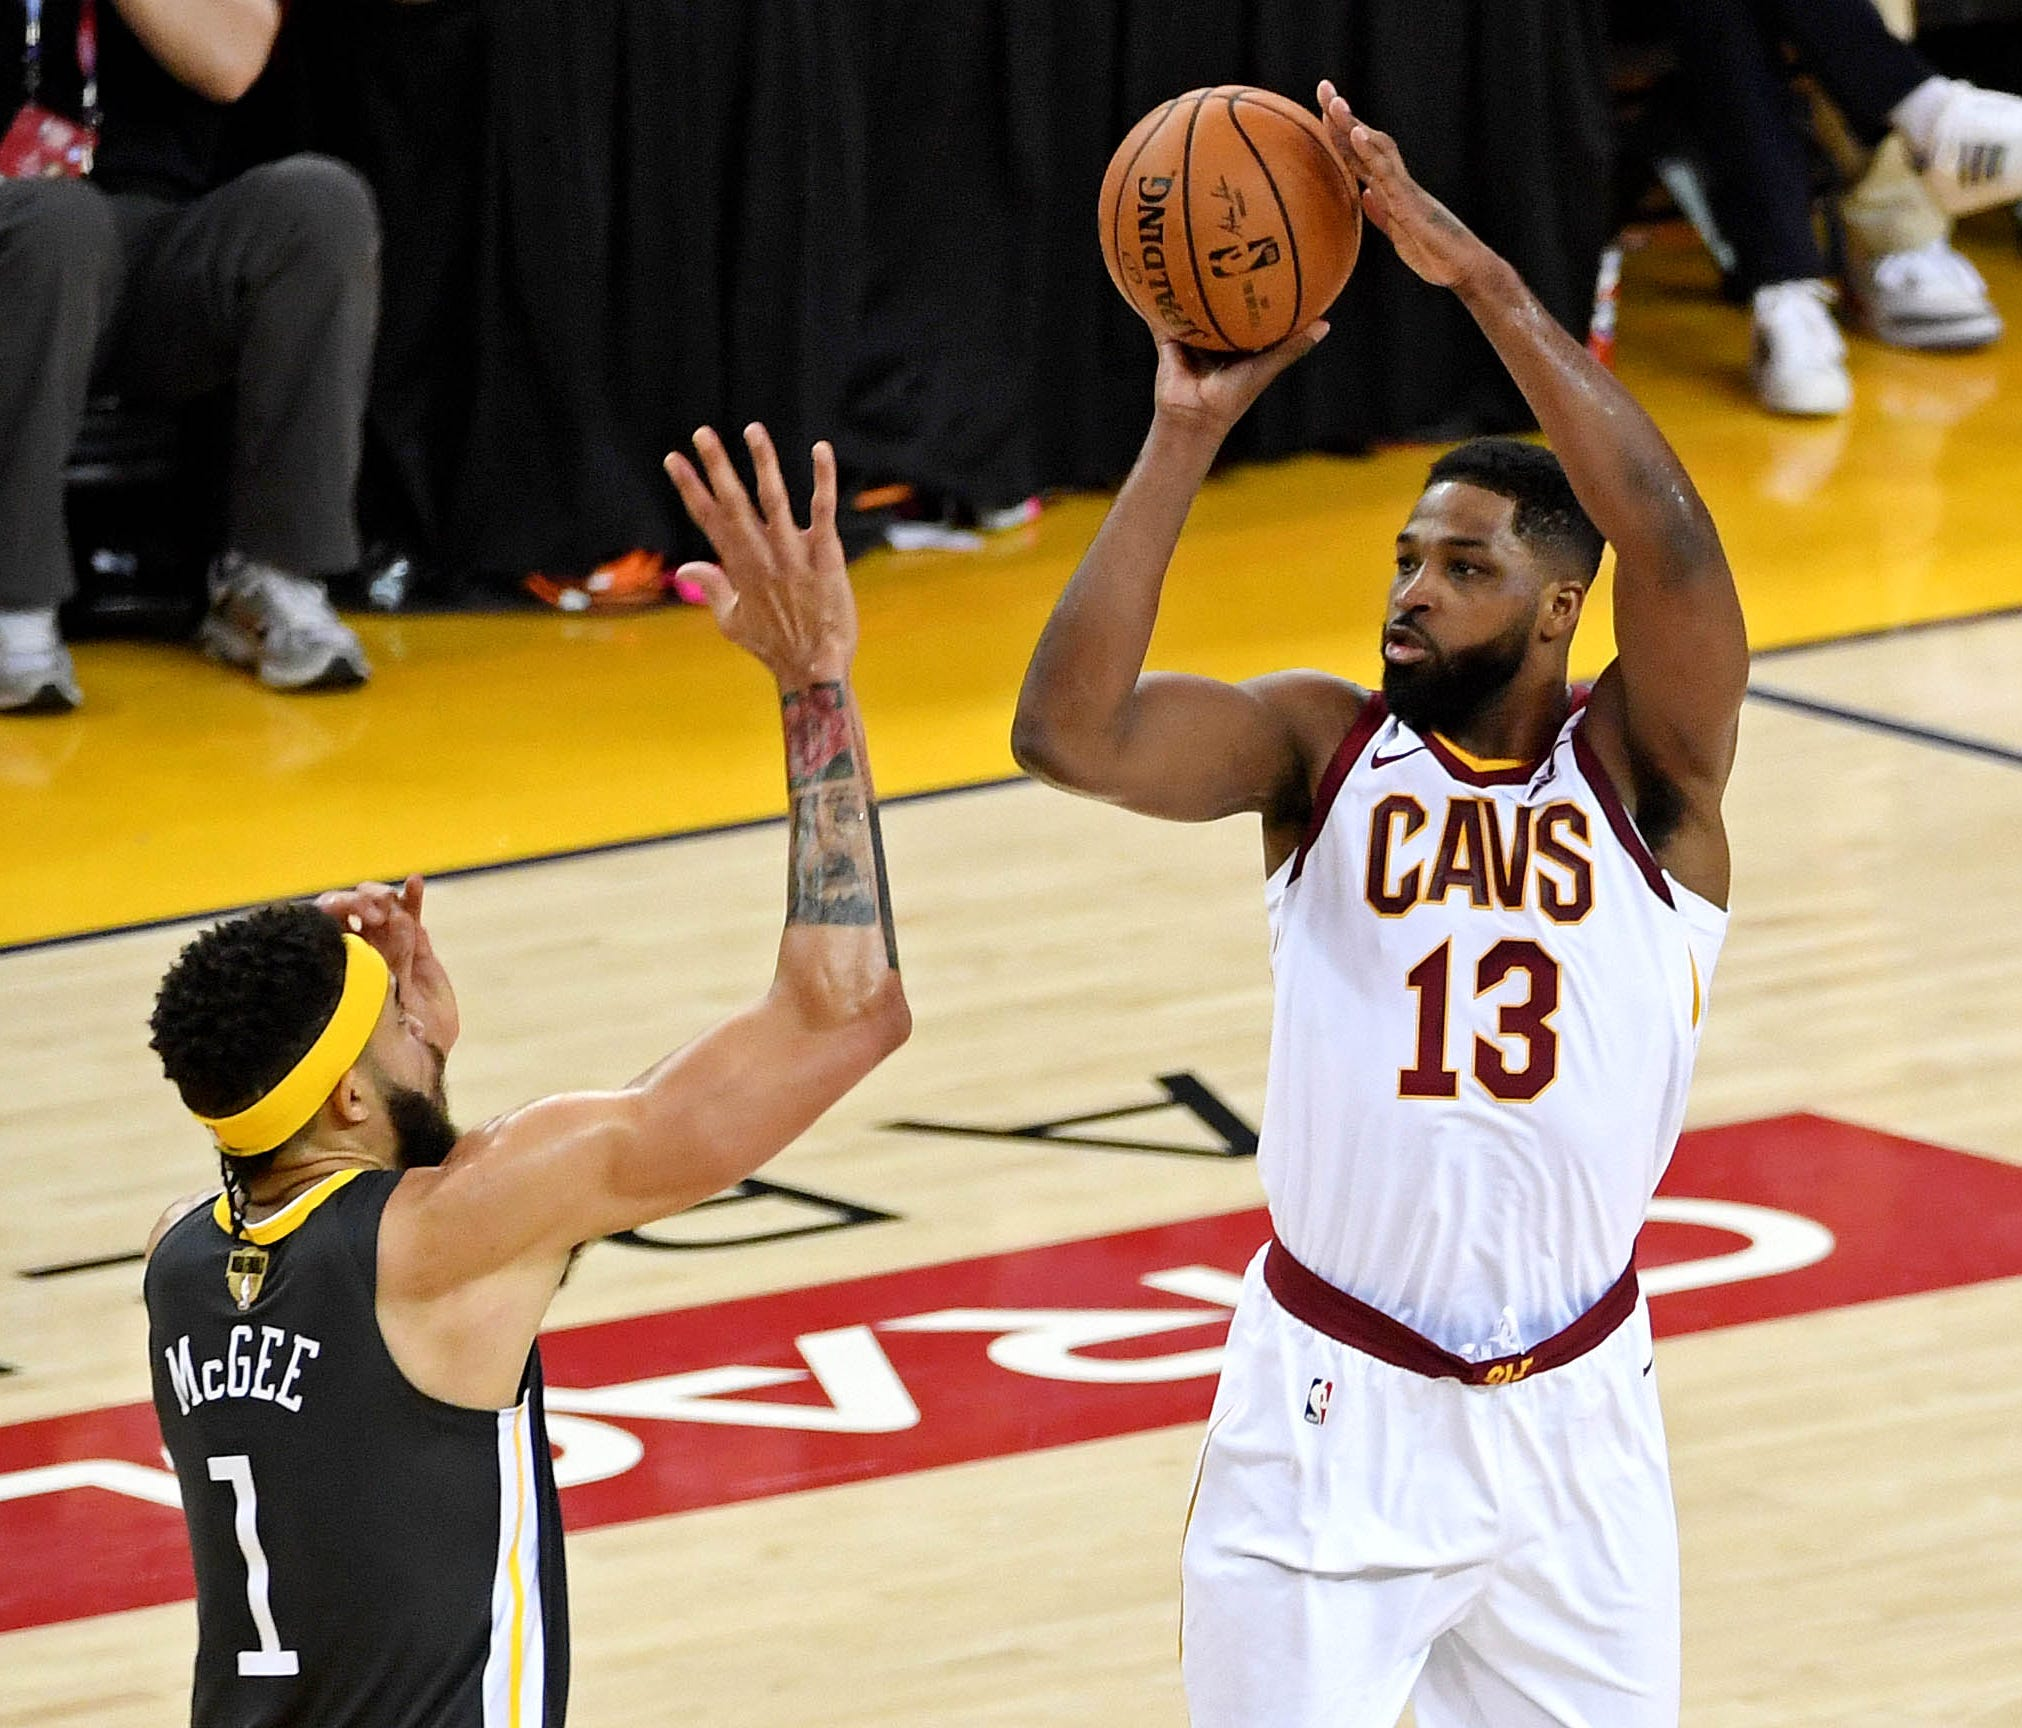 Cleveland Cavaliers center Tristan Thompson shoots the ball against Golden State Warriors center JaVale McGee during the first quarter in Game 2 of the NBA Finals.